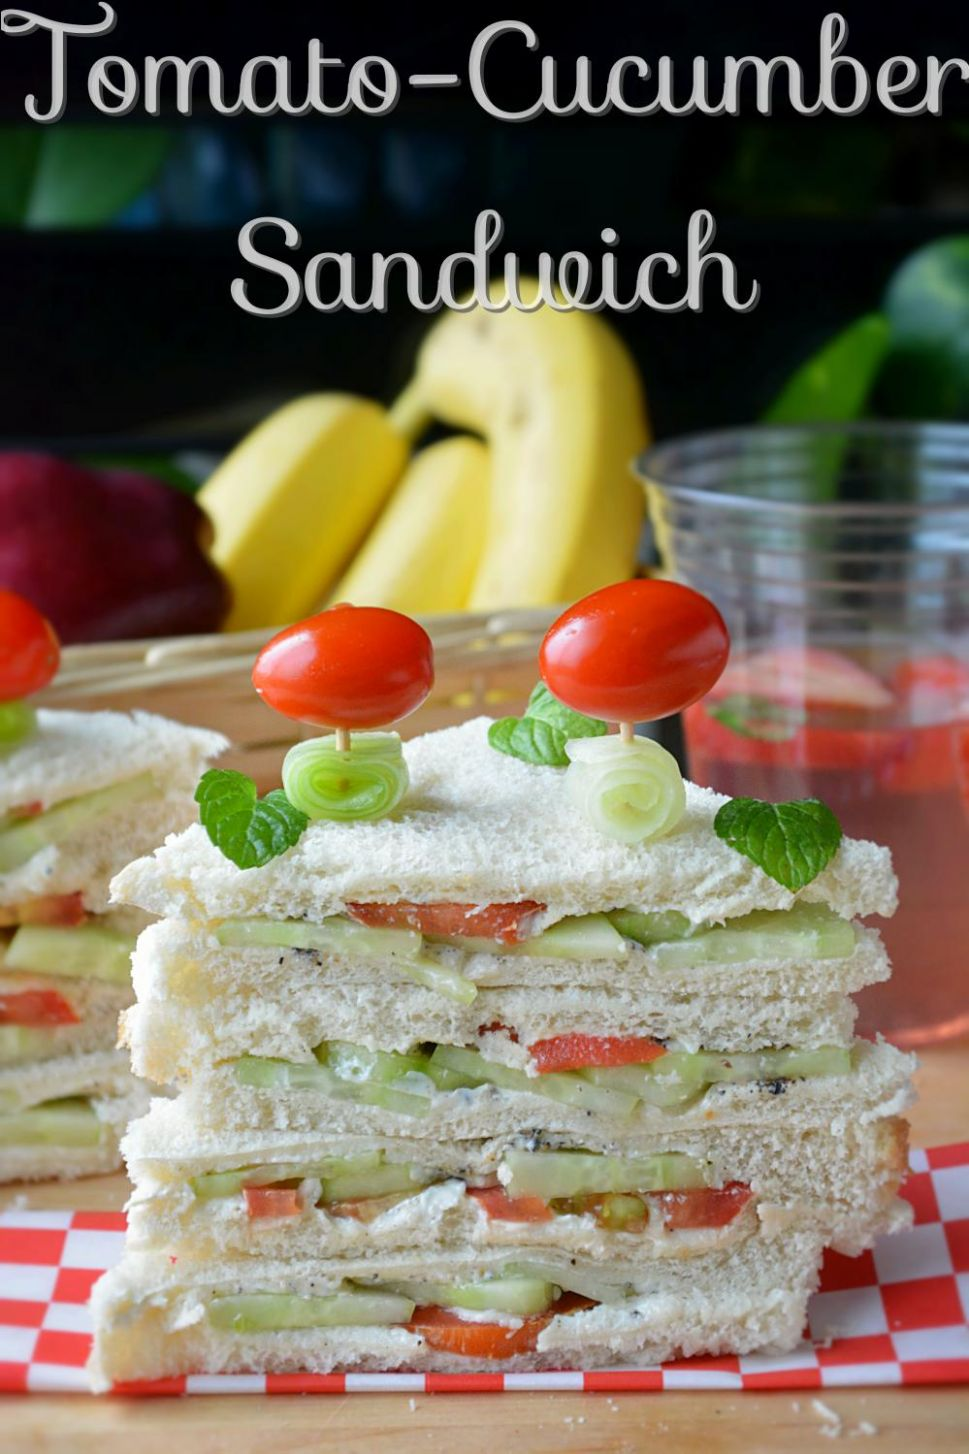 Tomato cucumber Veggie Sandwich - Recipes Of Sandwich In English